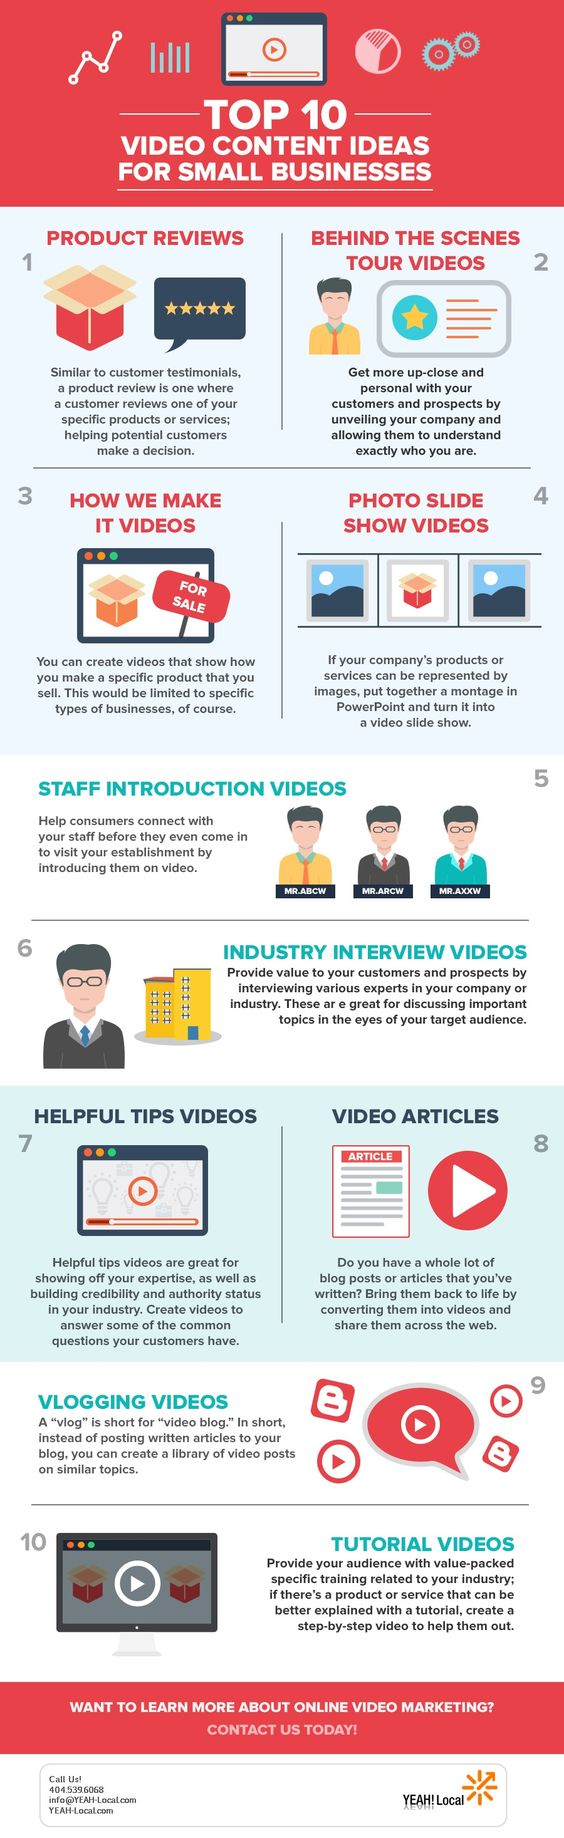 Video-Content-Ideas-For-Small-Business